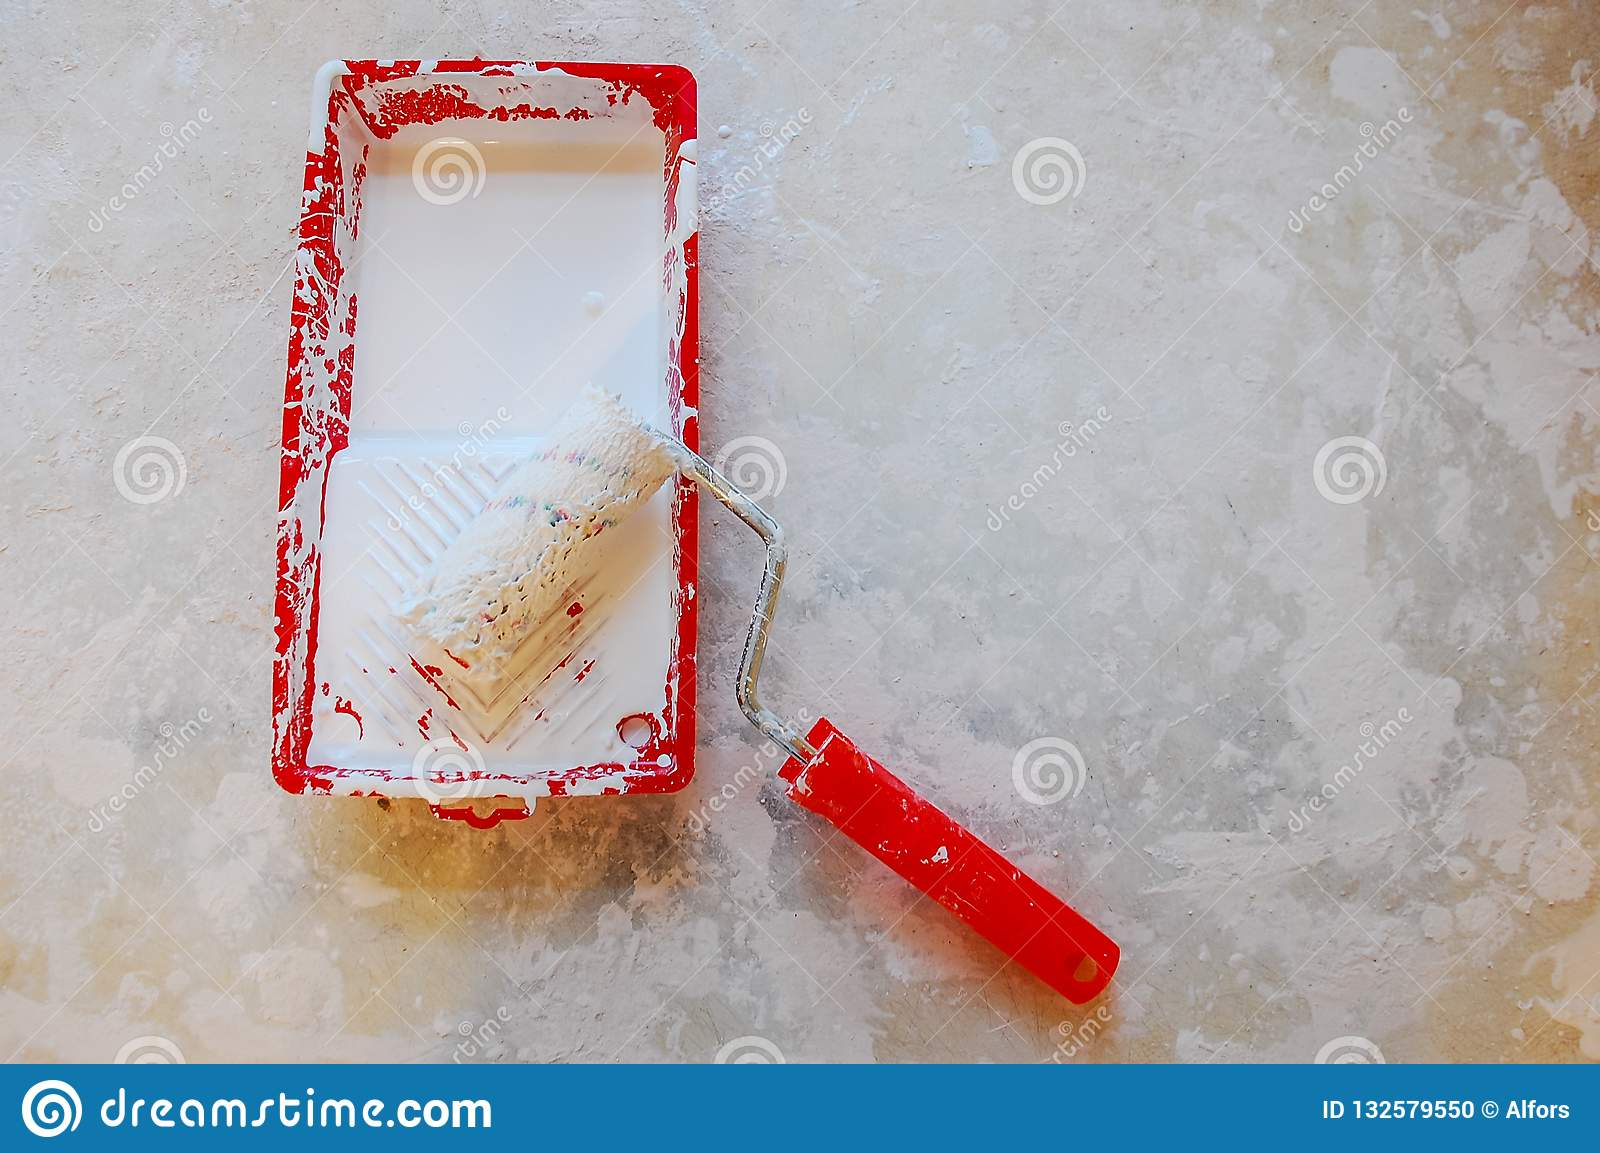 Paint roller in tray. white paint